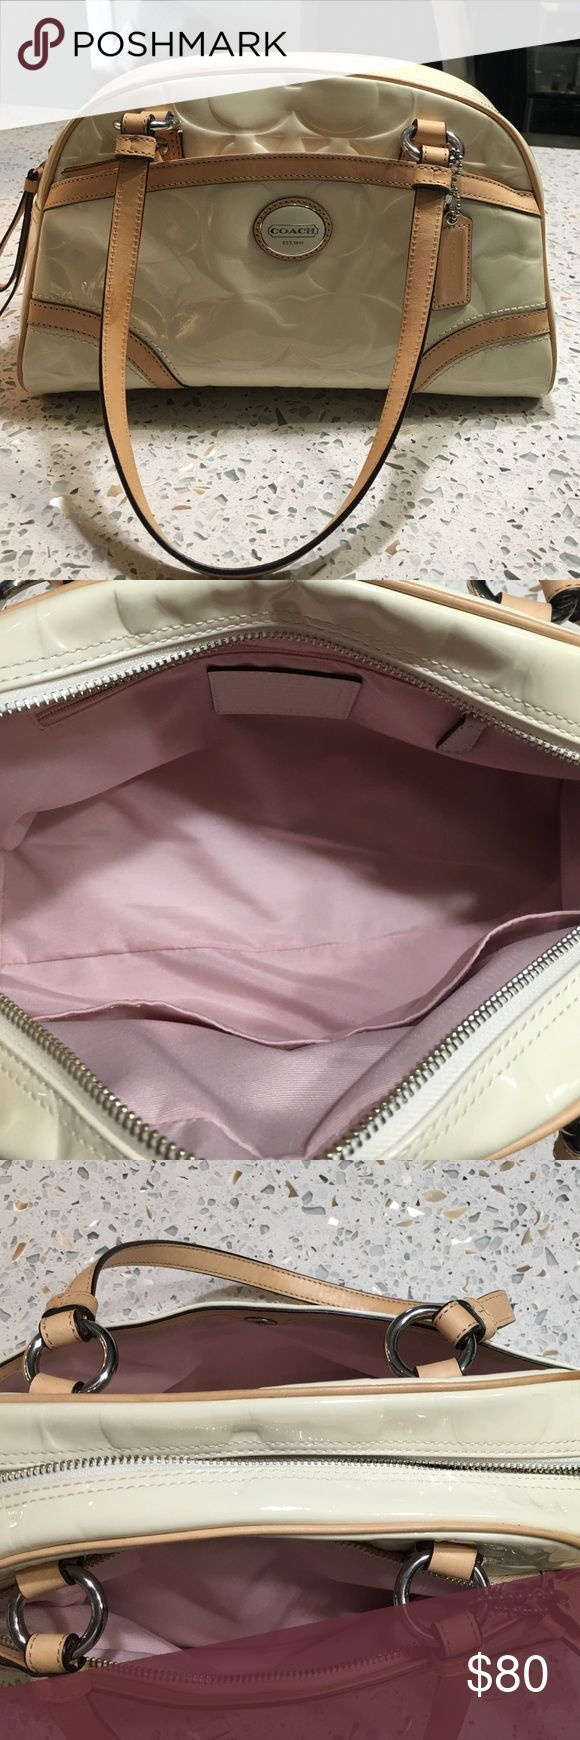 Like NEW Coach handbag Only used two times. Been stored in smoke free home and in a dust bag. Shiny off white with tan leather trim and straps. There are a couple of marks on it that came that way from the store resulting in a slight discount. At the store they said a little fingernail polish may remove it but I was too scared to try. Inside pink fabric lining is clean like new. This is a super cute bag. Please see additional pics on additional post.  Does come with over the shoulder strap…